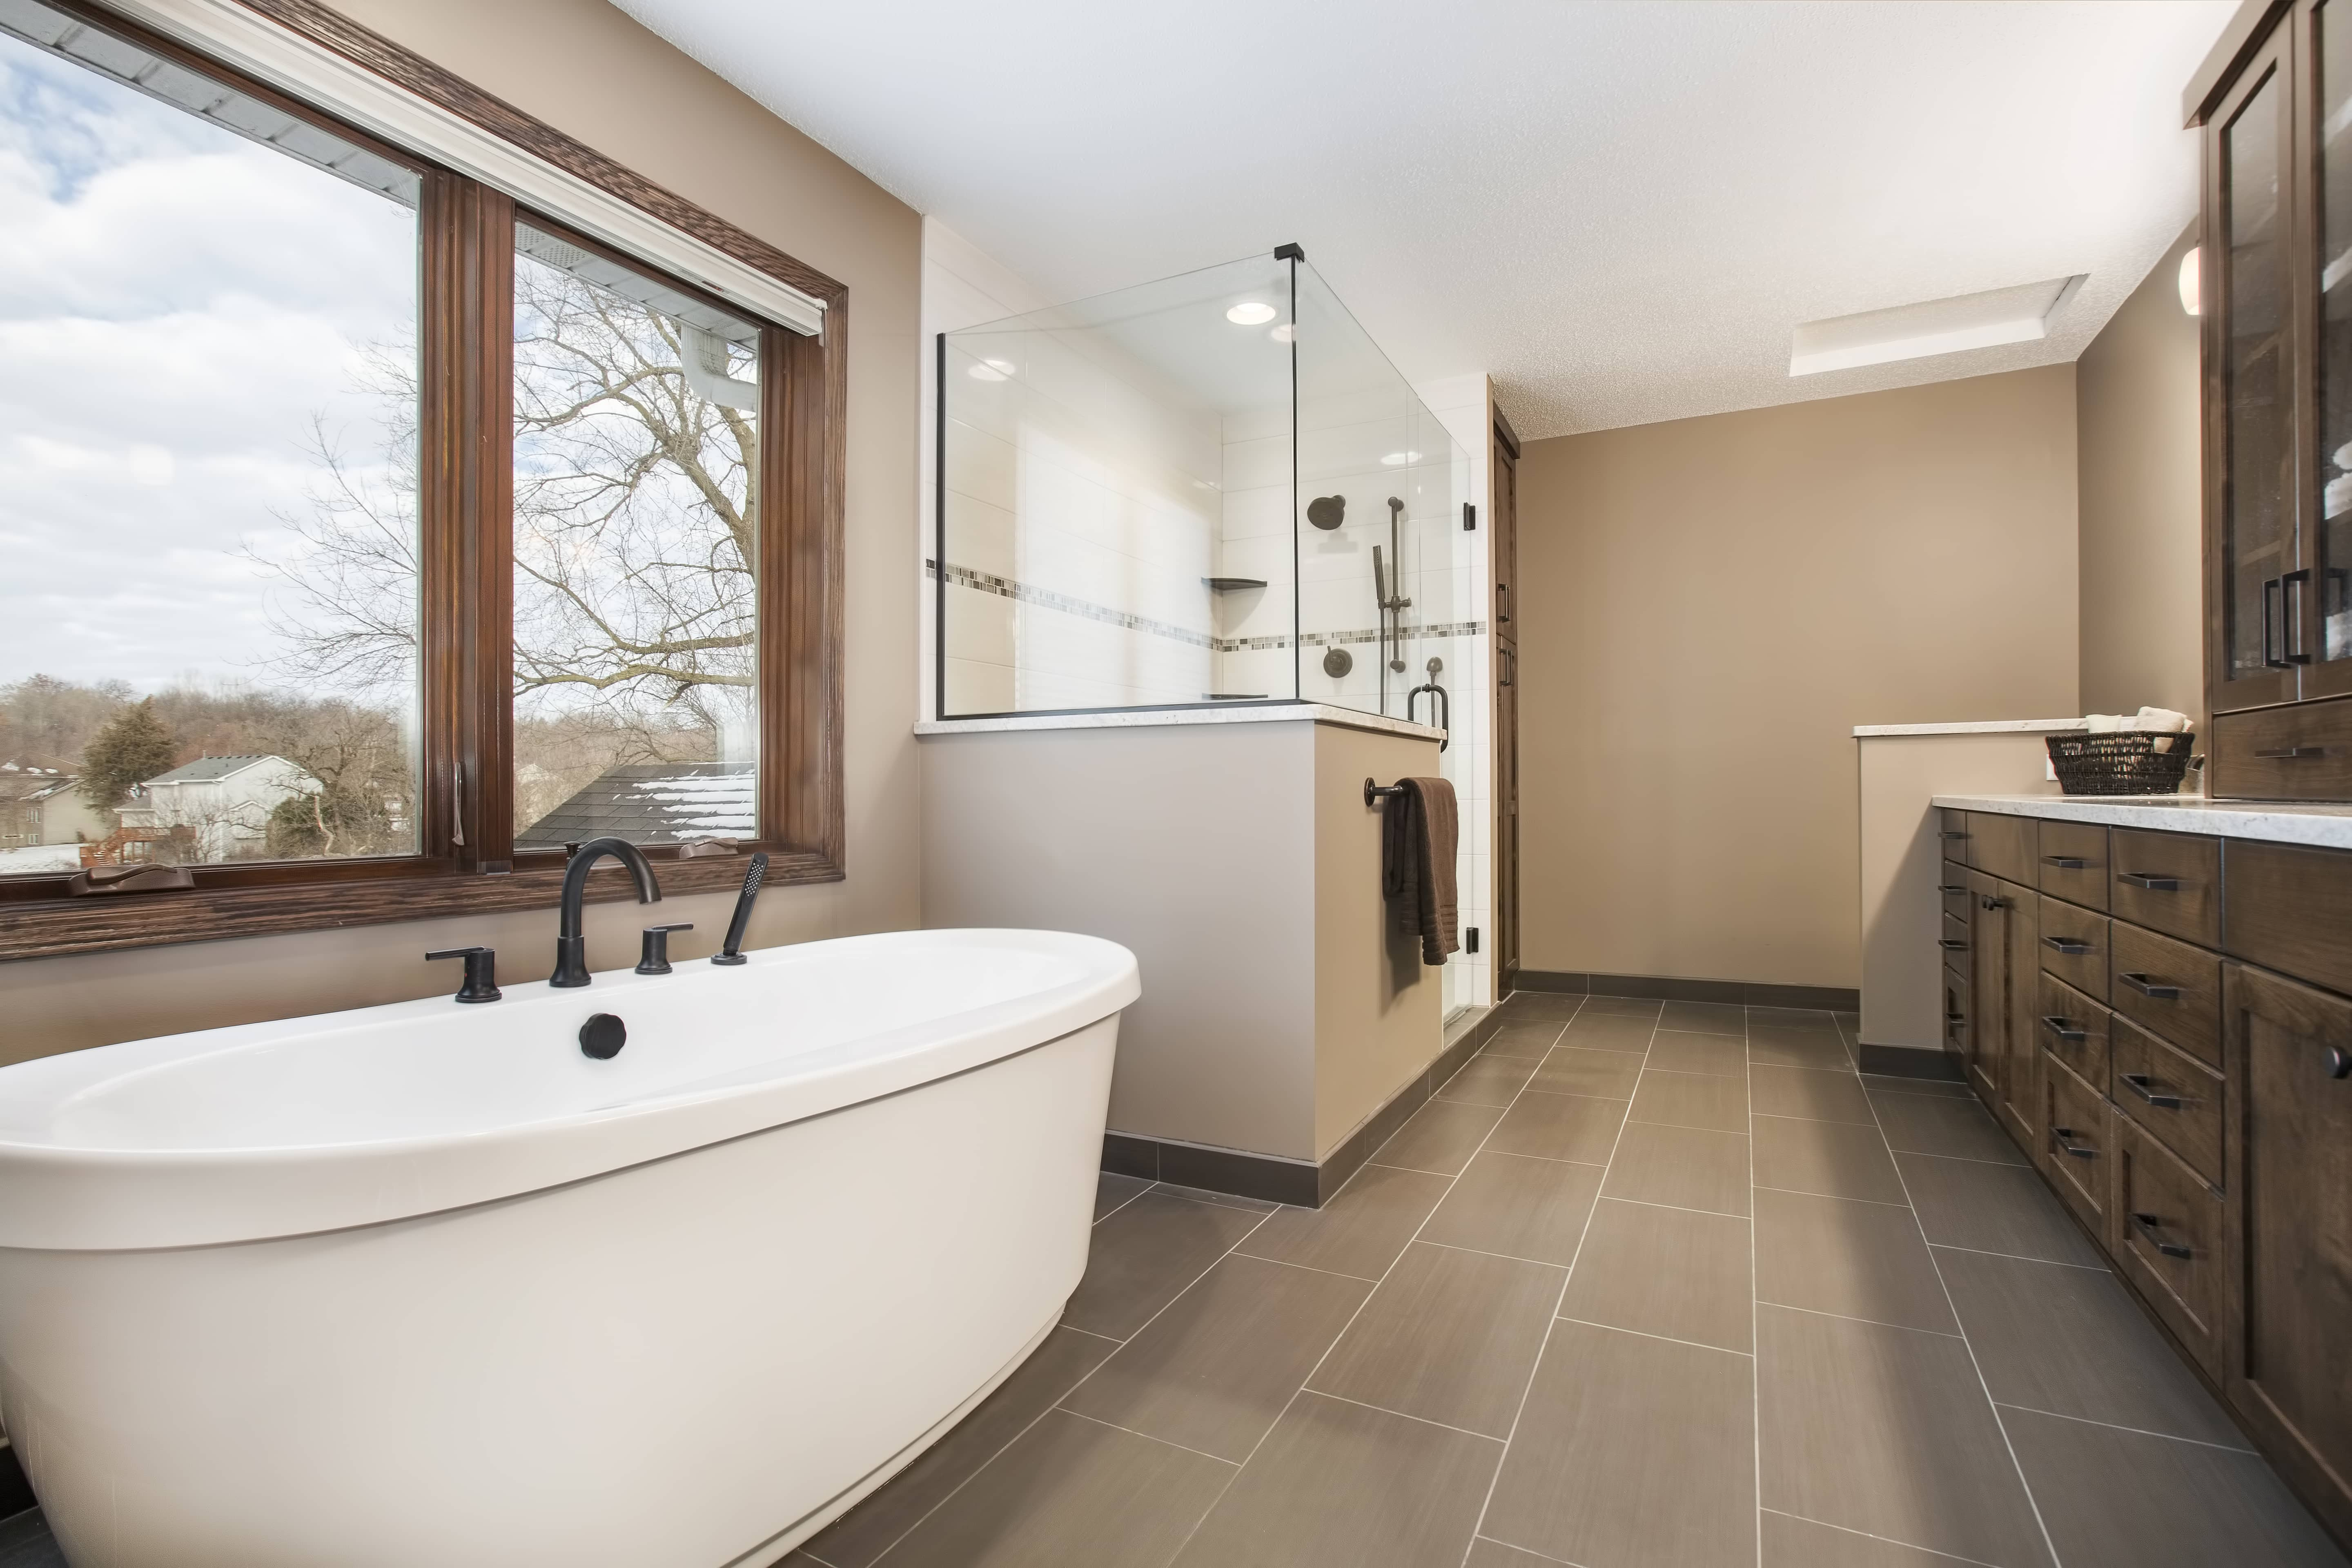 Professional bathroom remodeling services james barton for Professional bathroom renovations